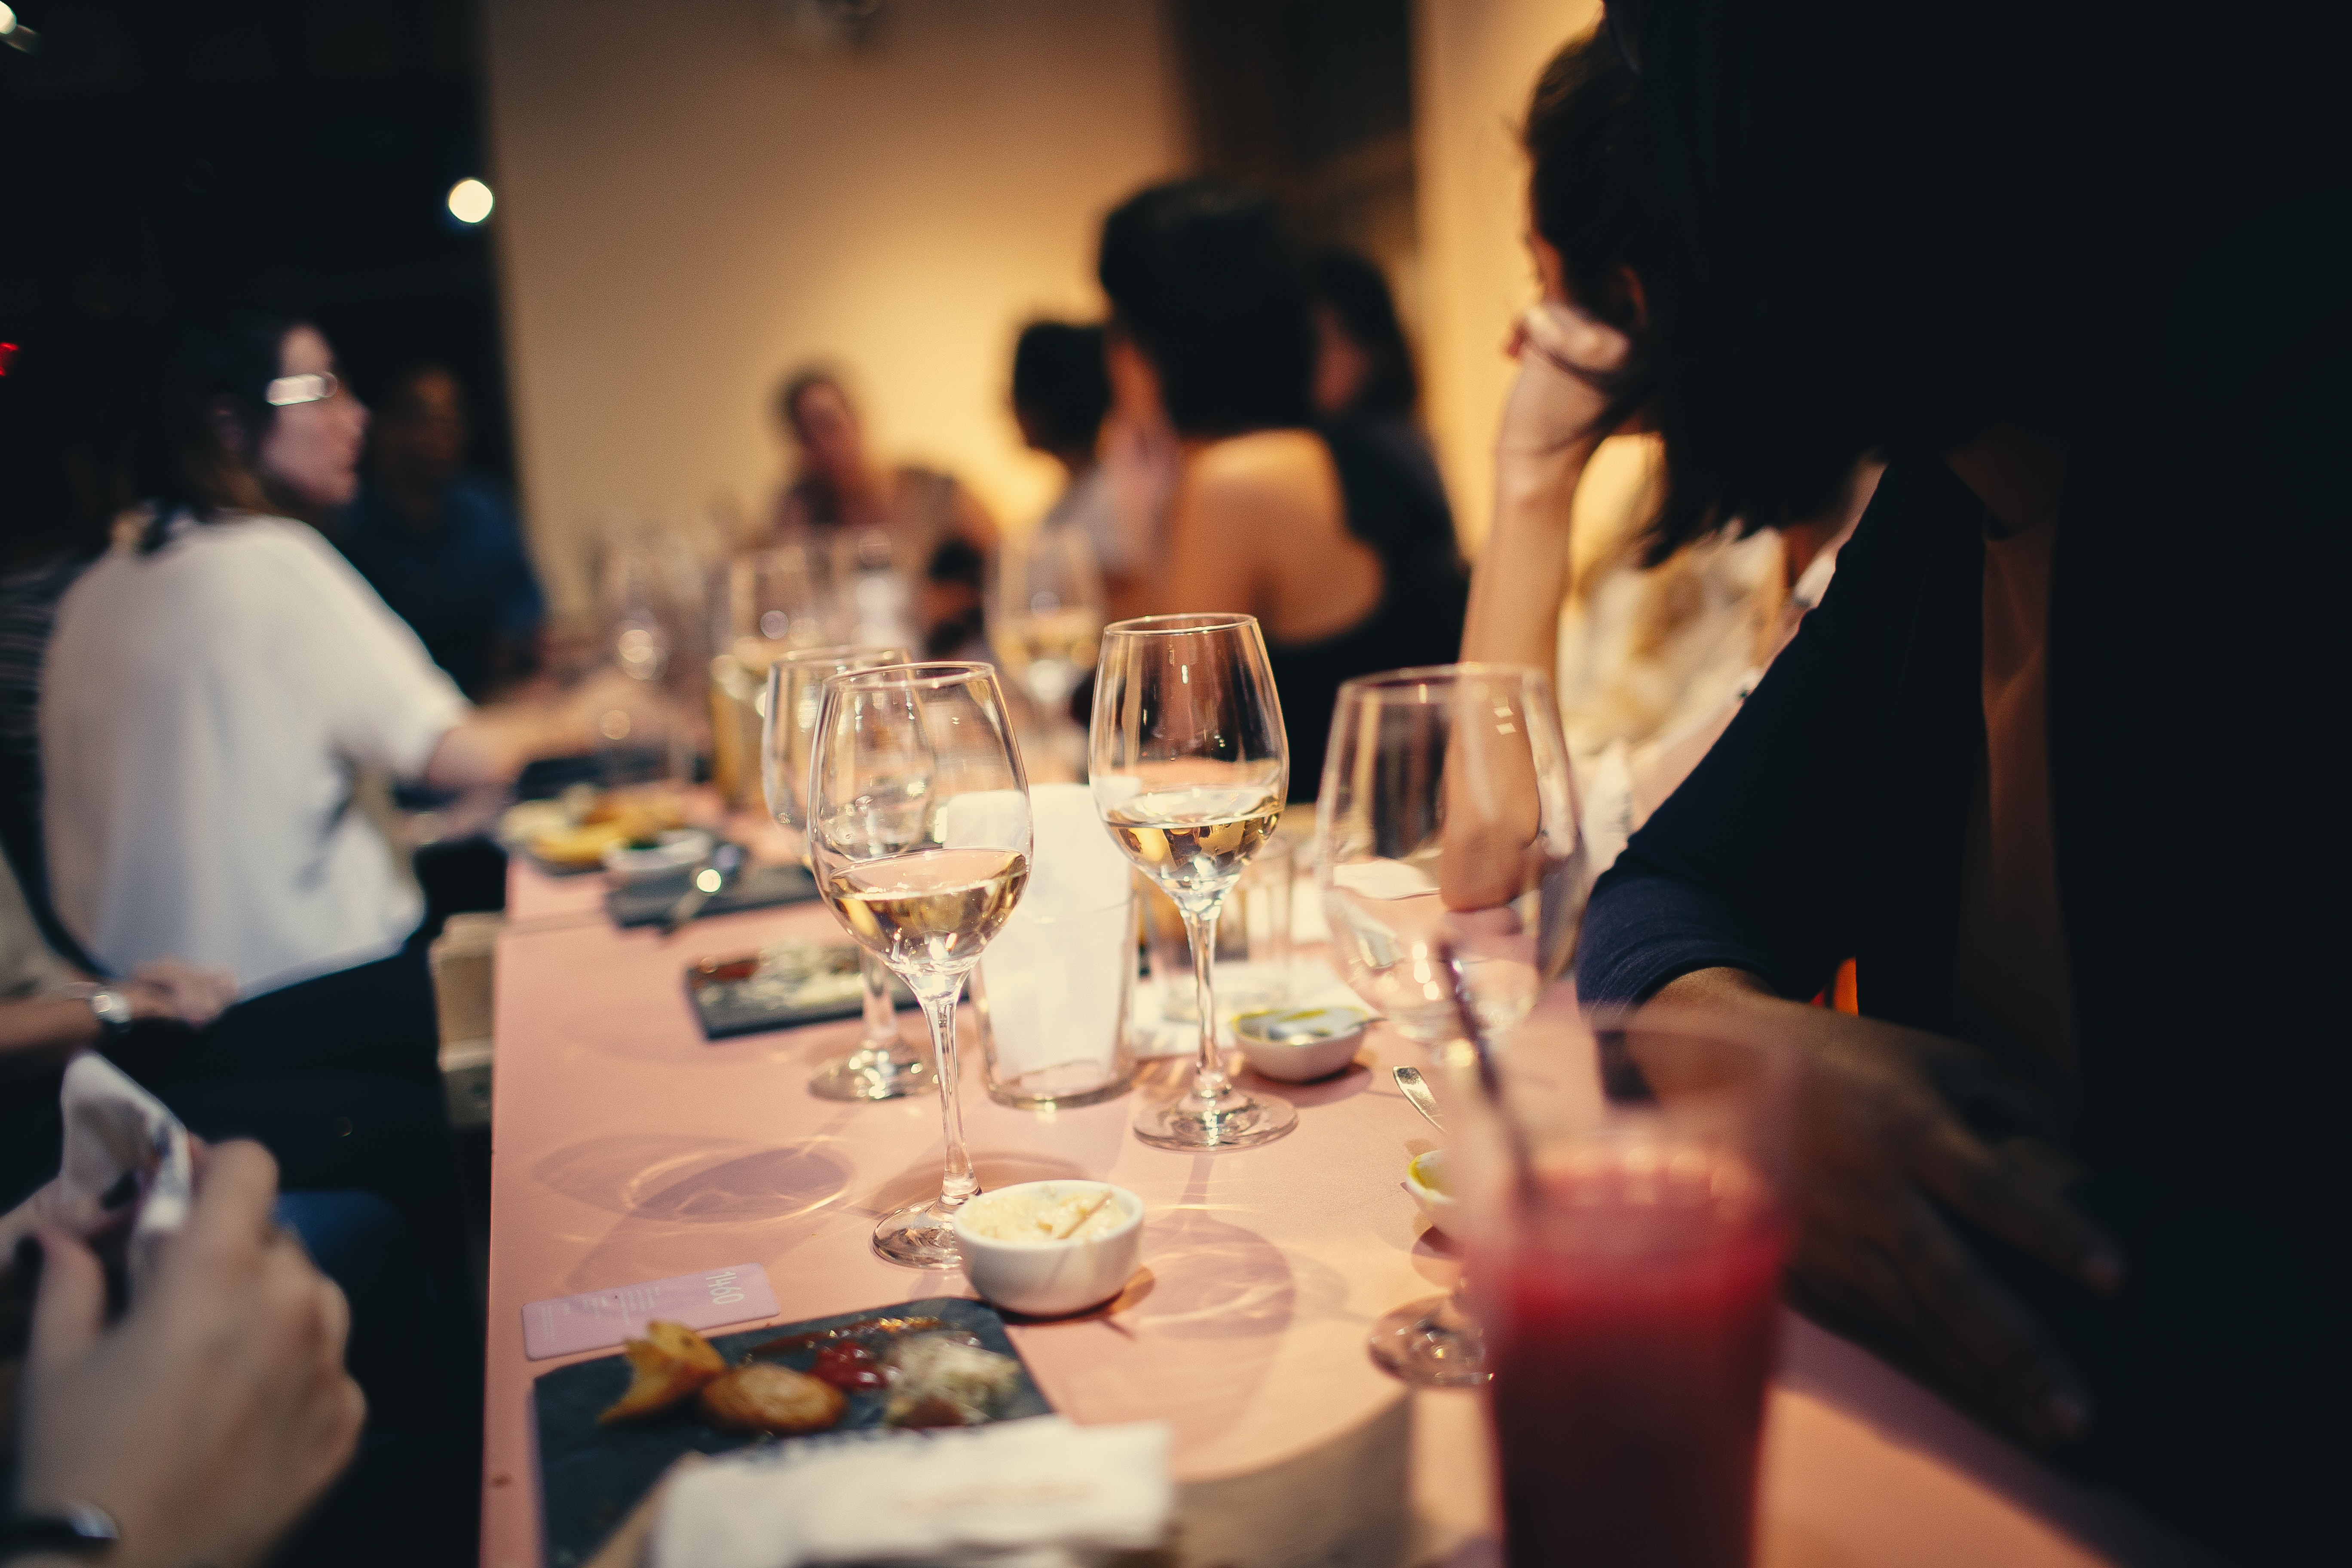 People Having Wine In A Restaurant, Celebration, Wine, Tableware, Table setting, HQ Photo